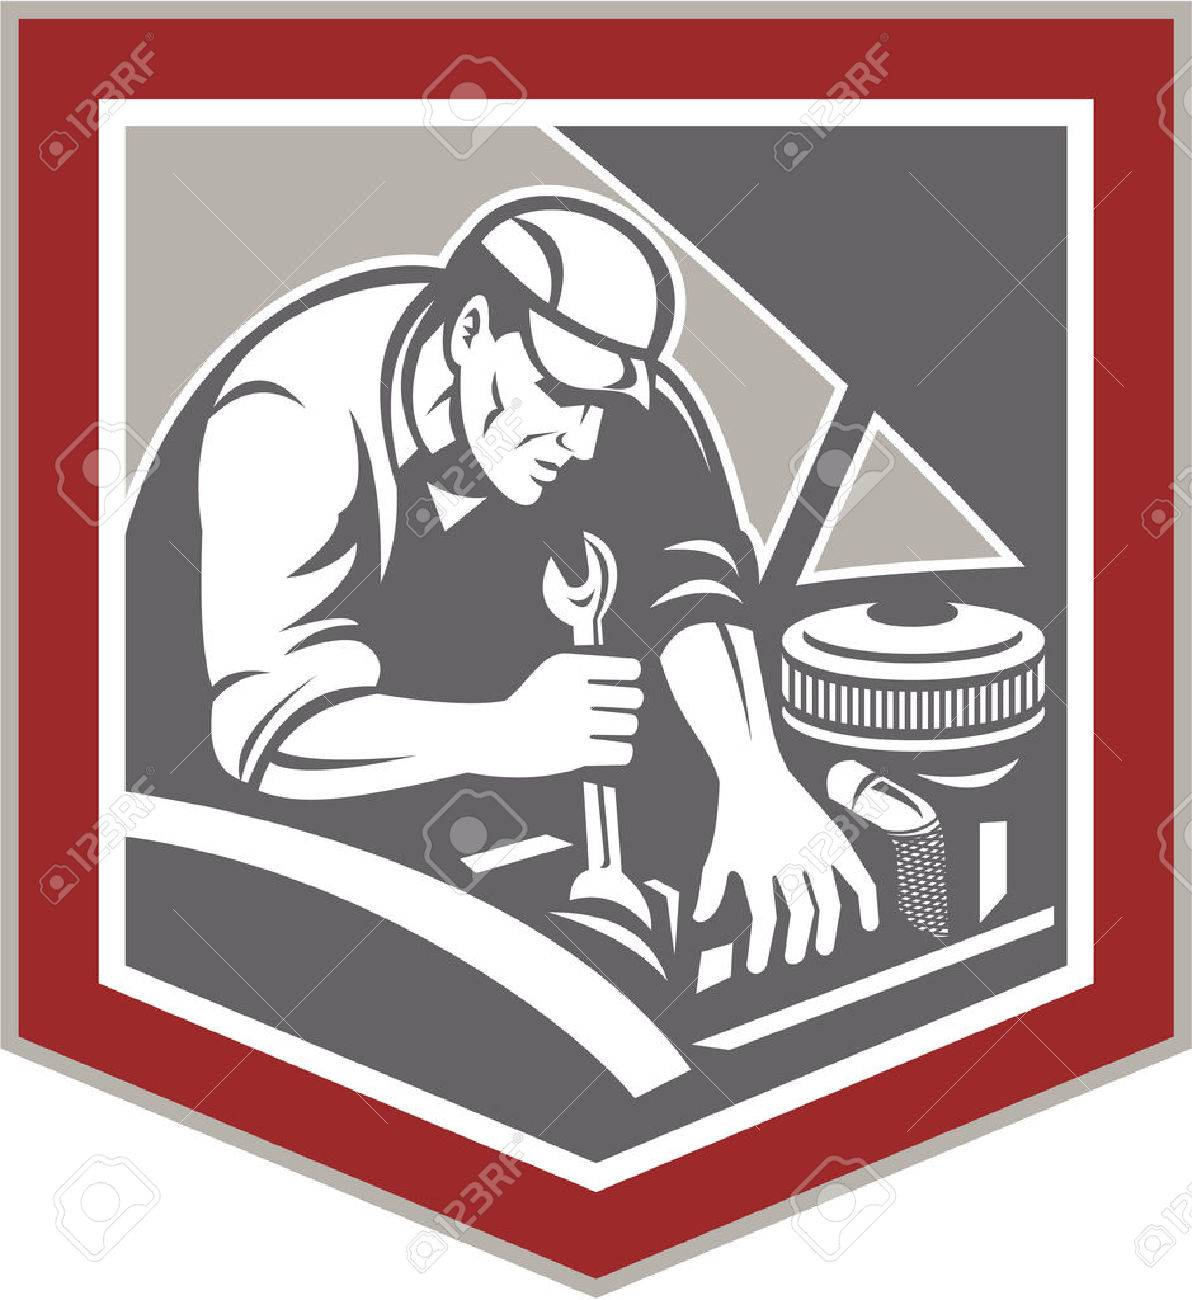 Illustration of a car mechanic repairing automobile vehicle using spanner wrench set inside shield crest shape done in retro woodcut style style. - 27235990